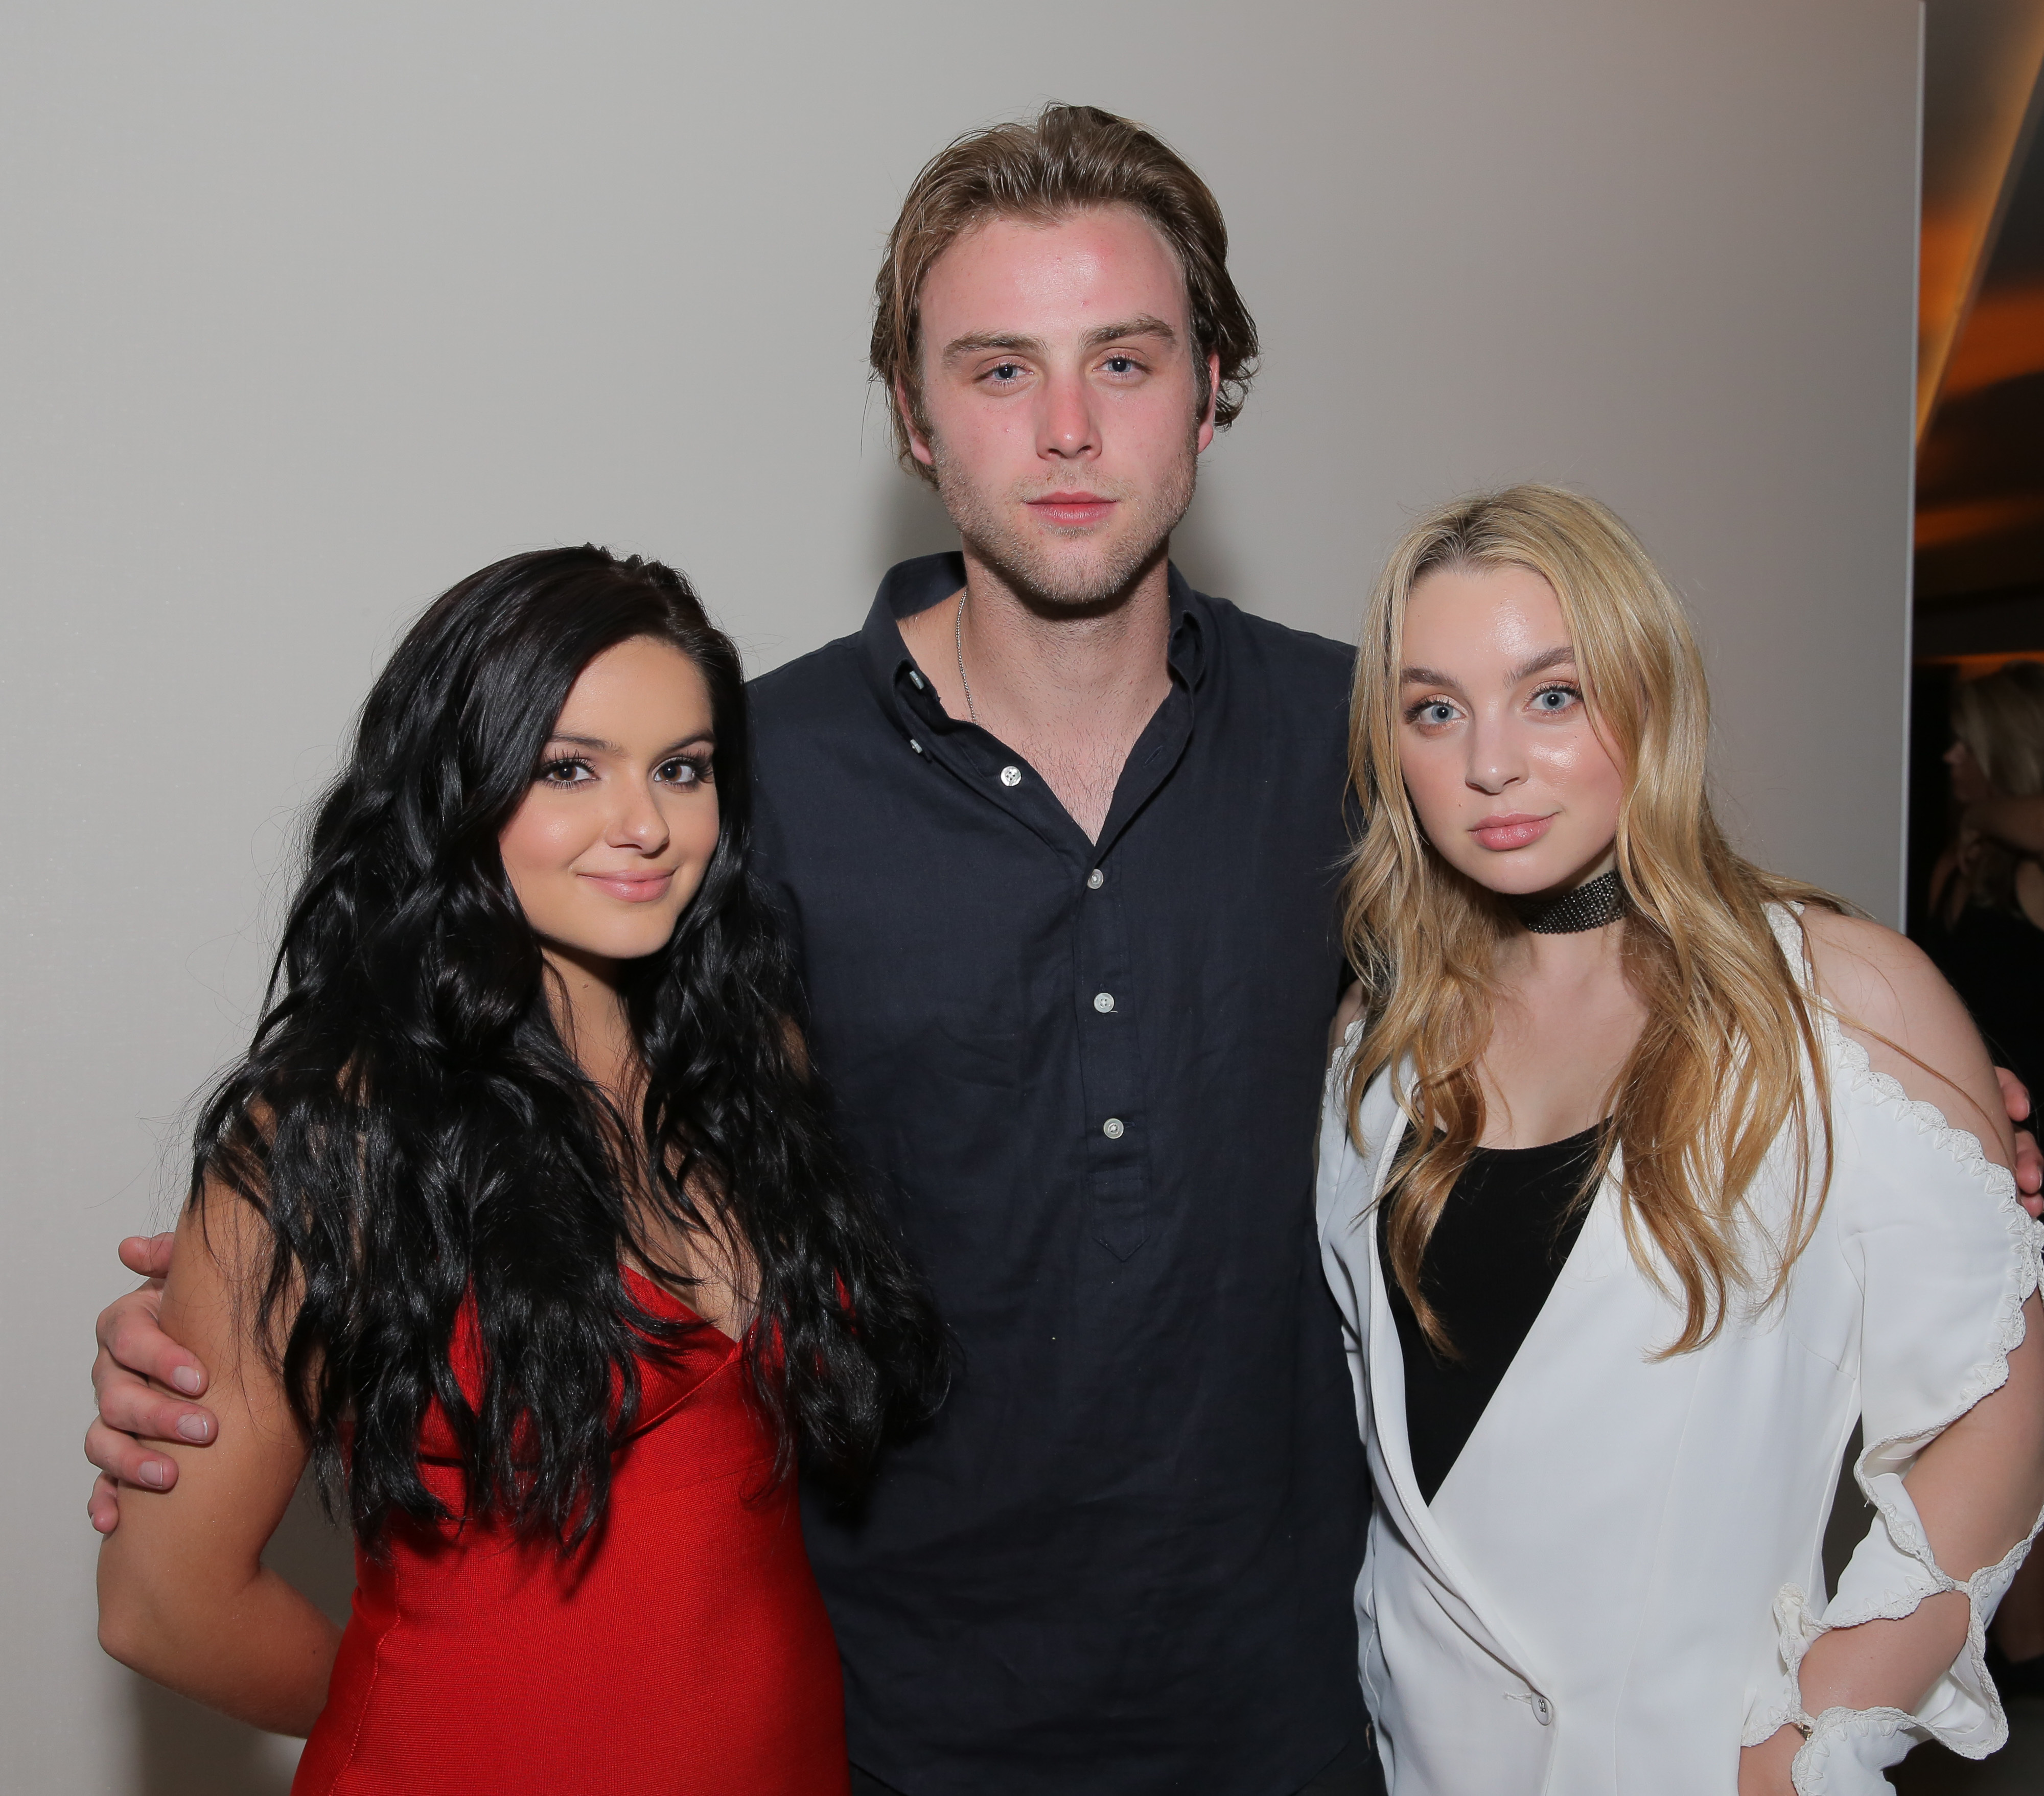 New couple alert? Ariel Winter hits the town with Sterling Beaumon